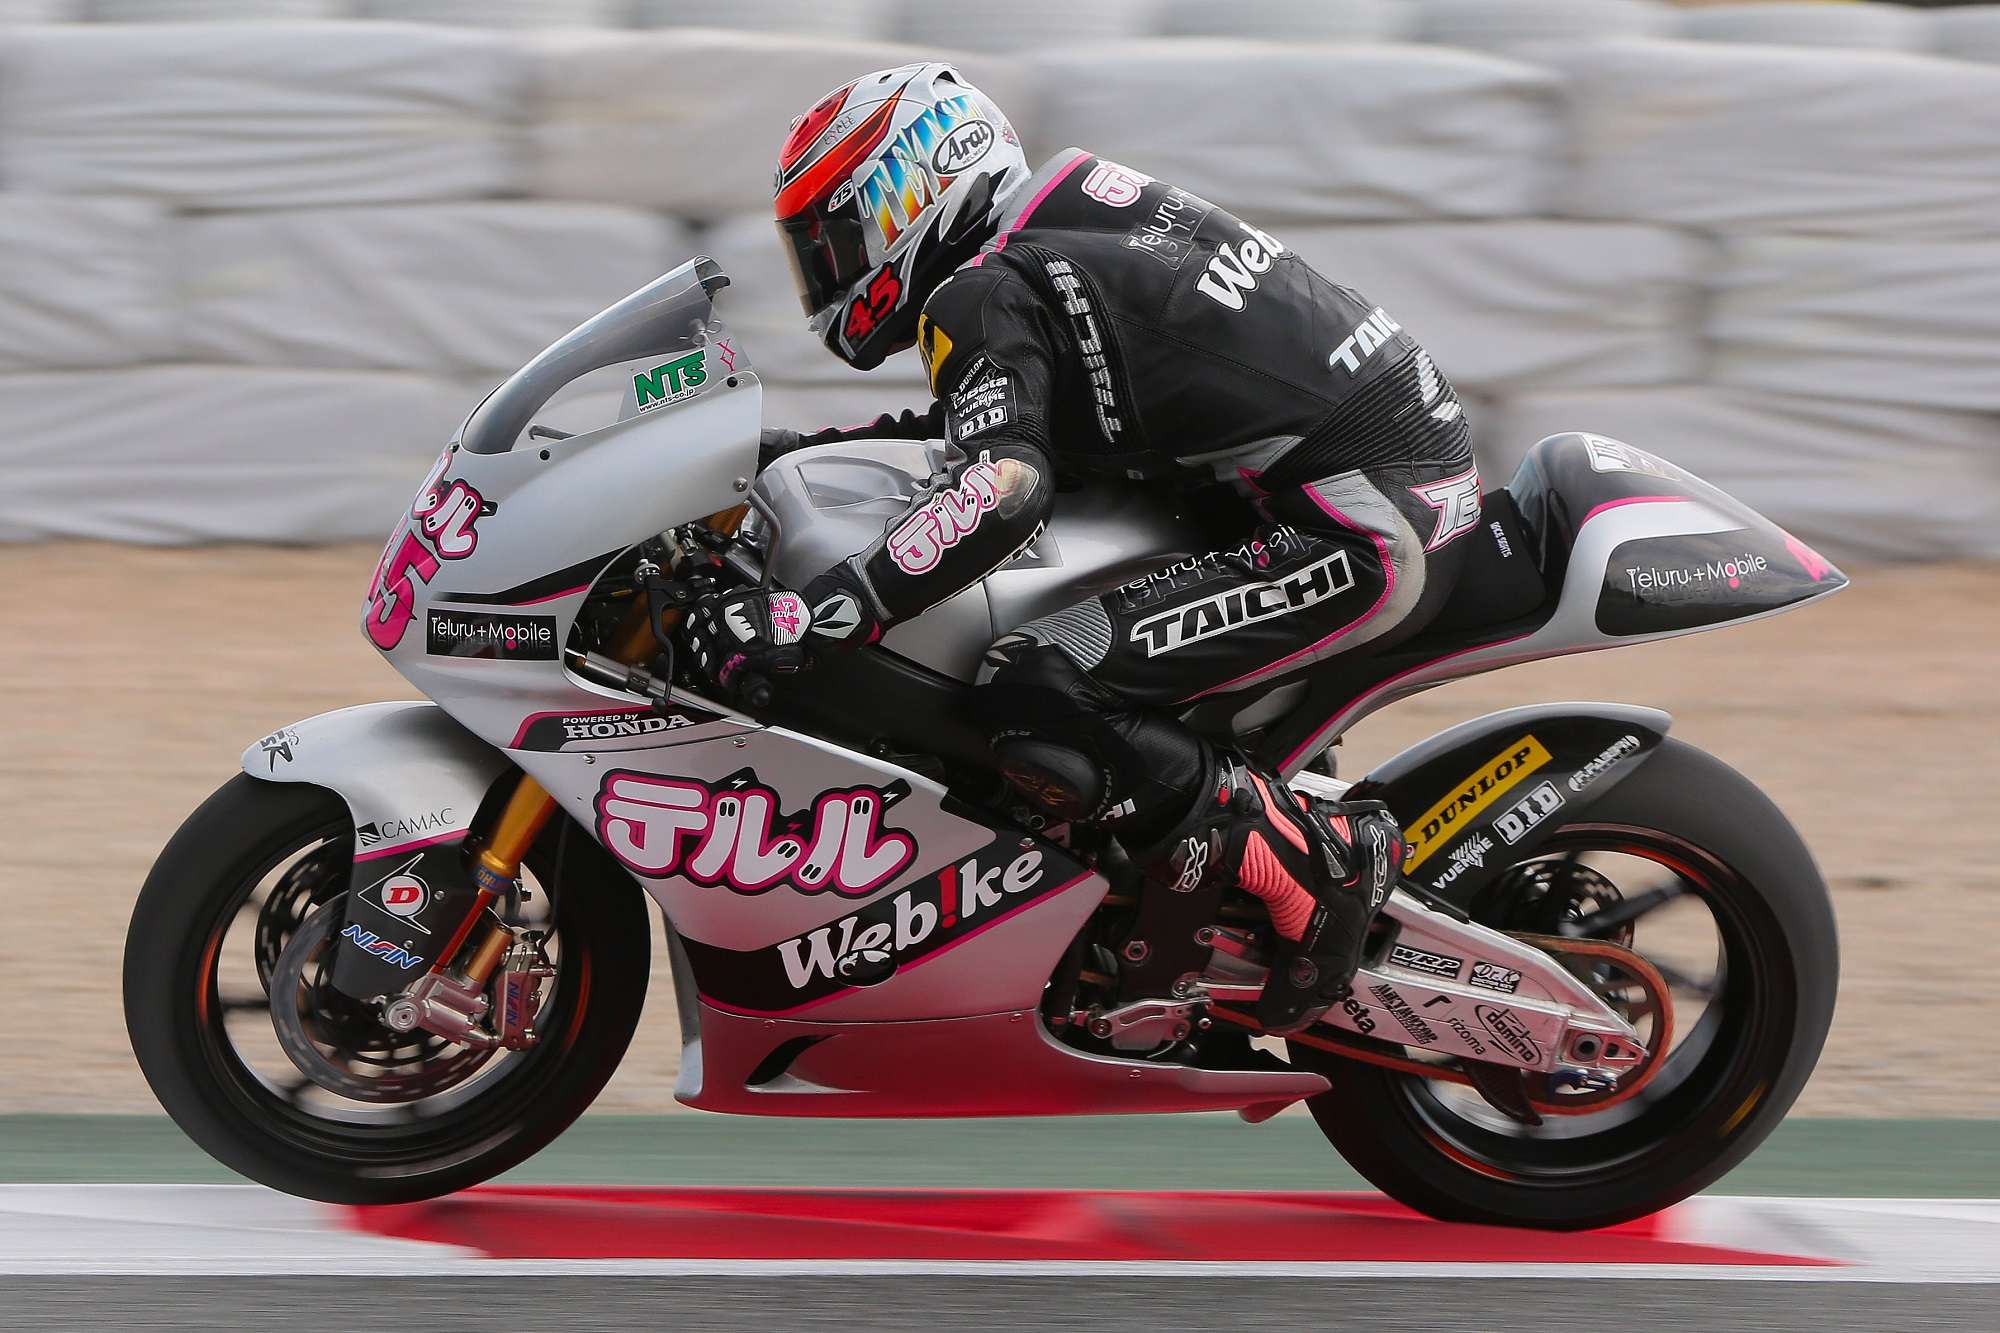 Nagashima makes improvements at Catalunya